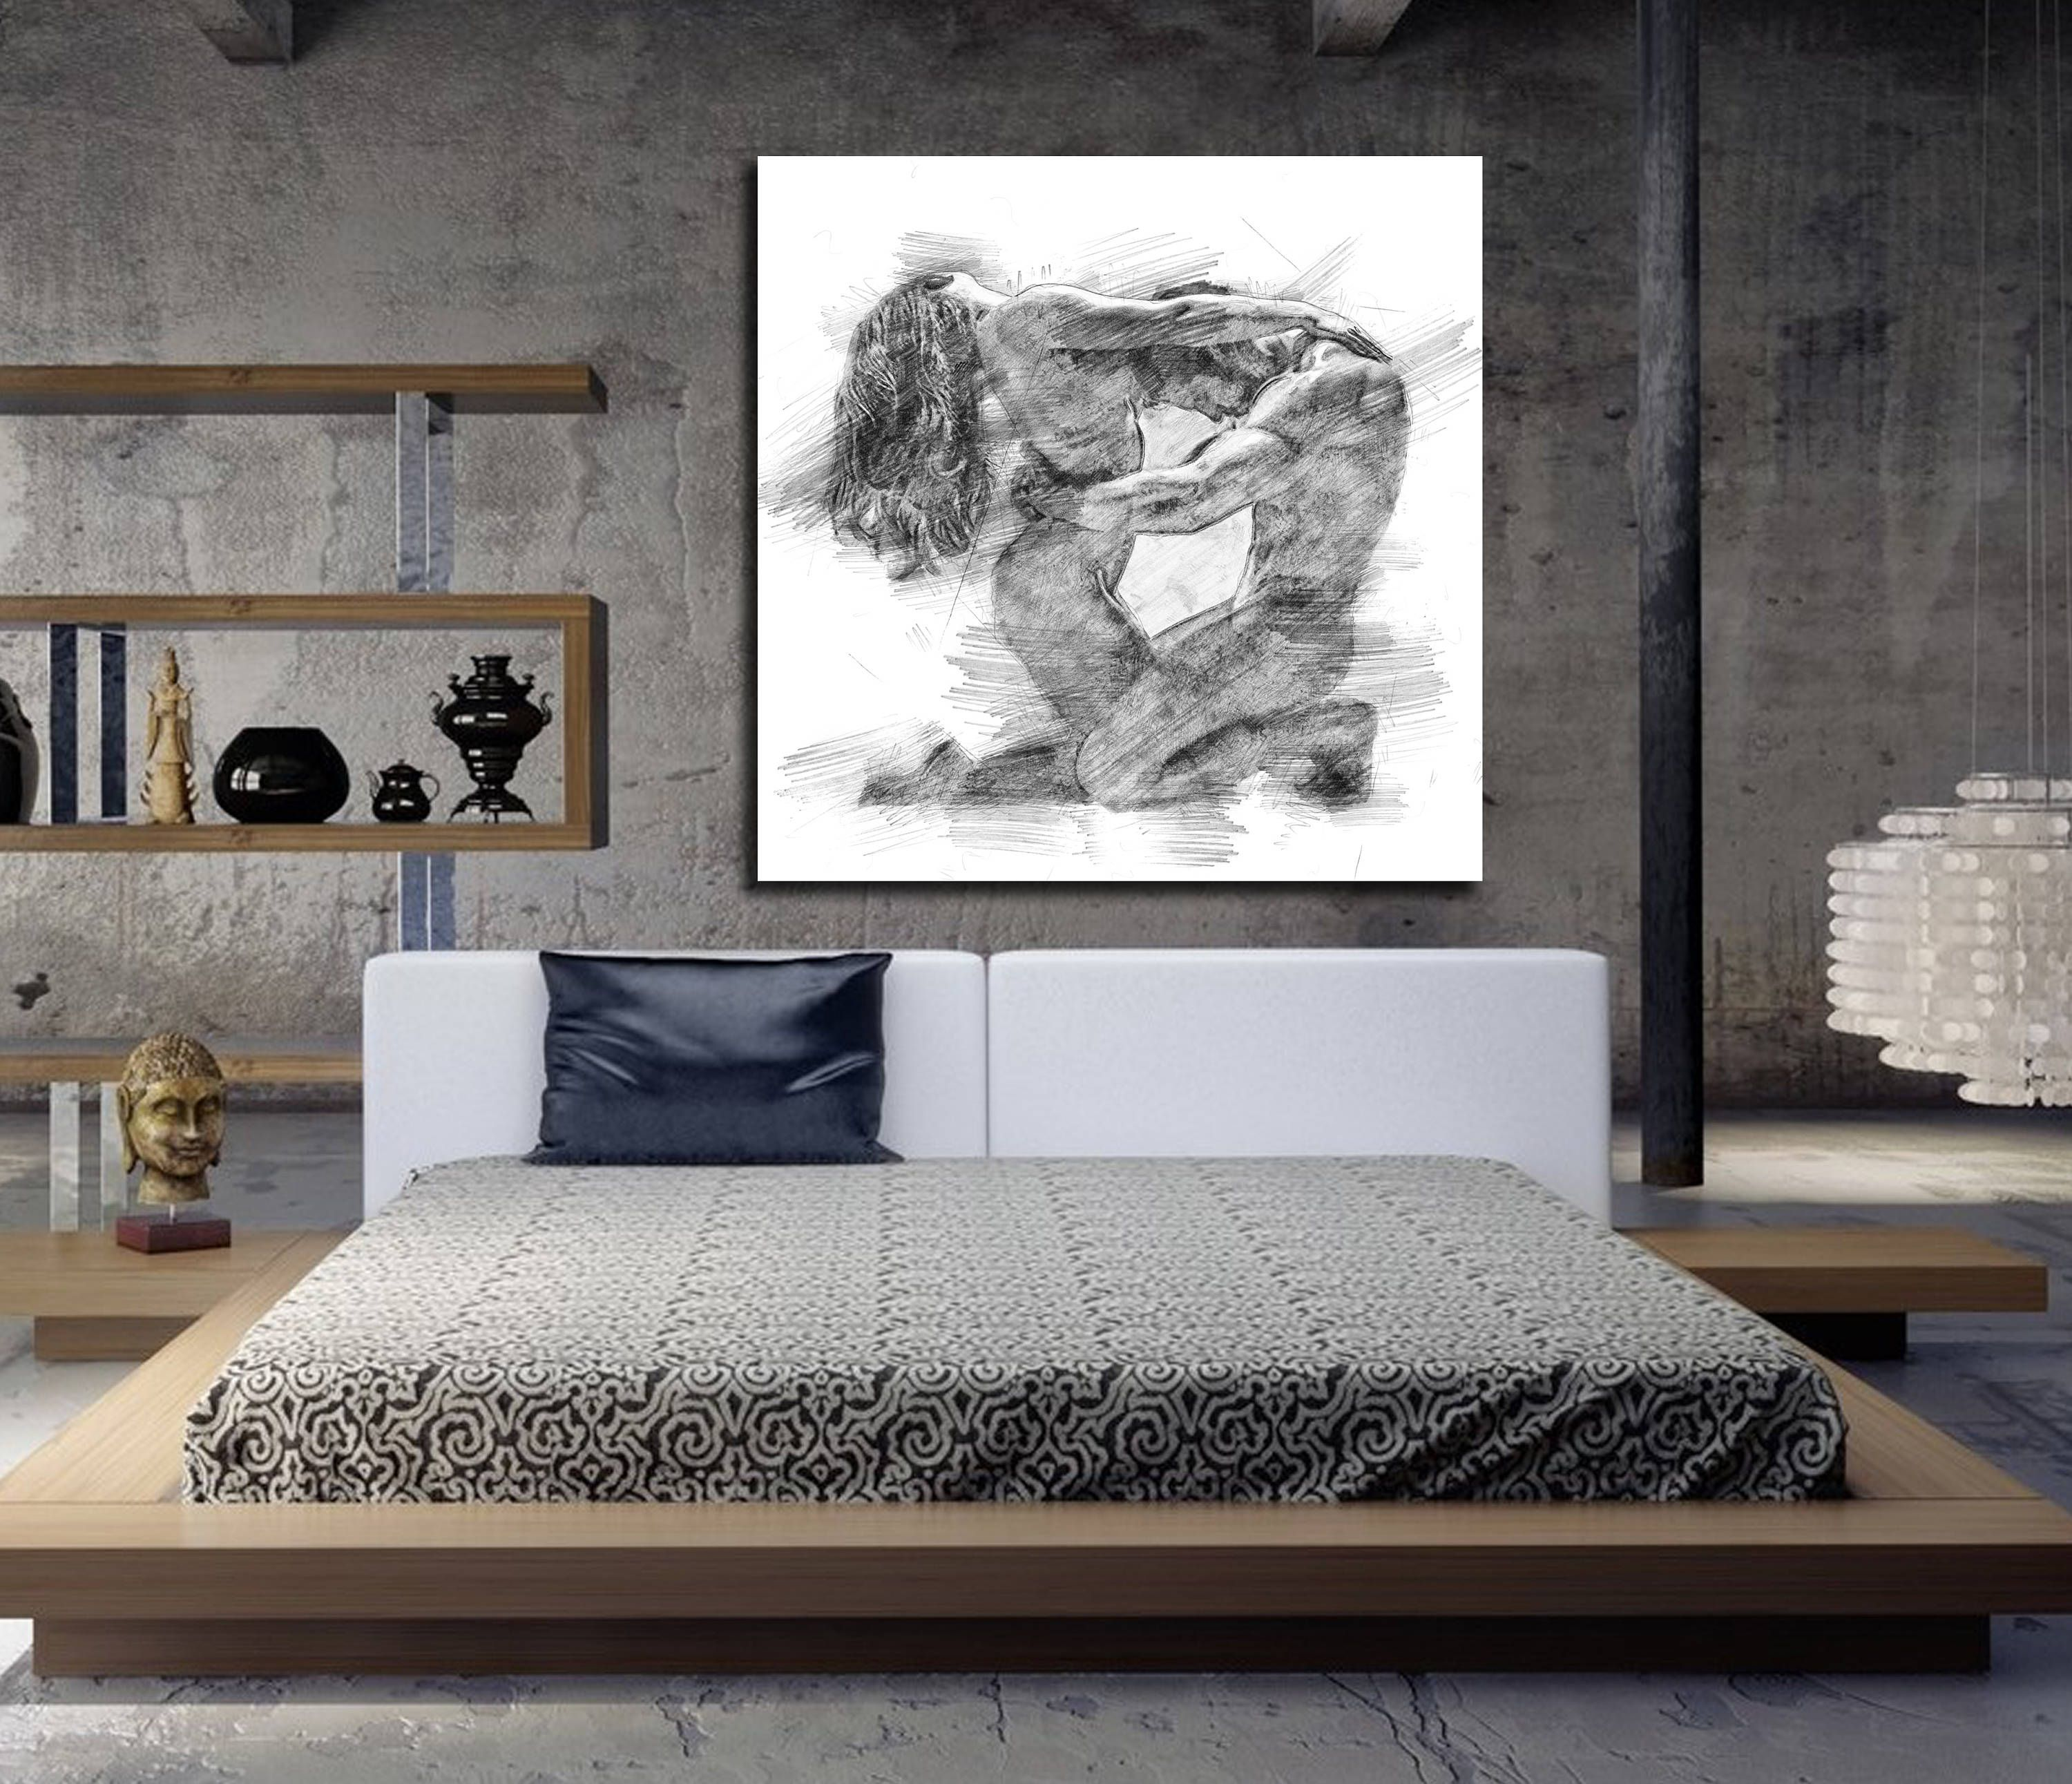 CANVAS ART His & Hers Bedroom Wall Art, Abstract Art Print, Pencil Sketch  Erotic